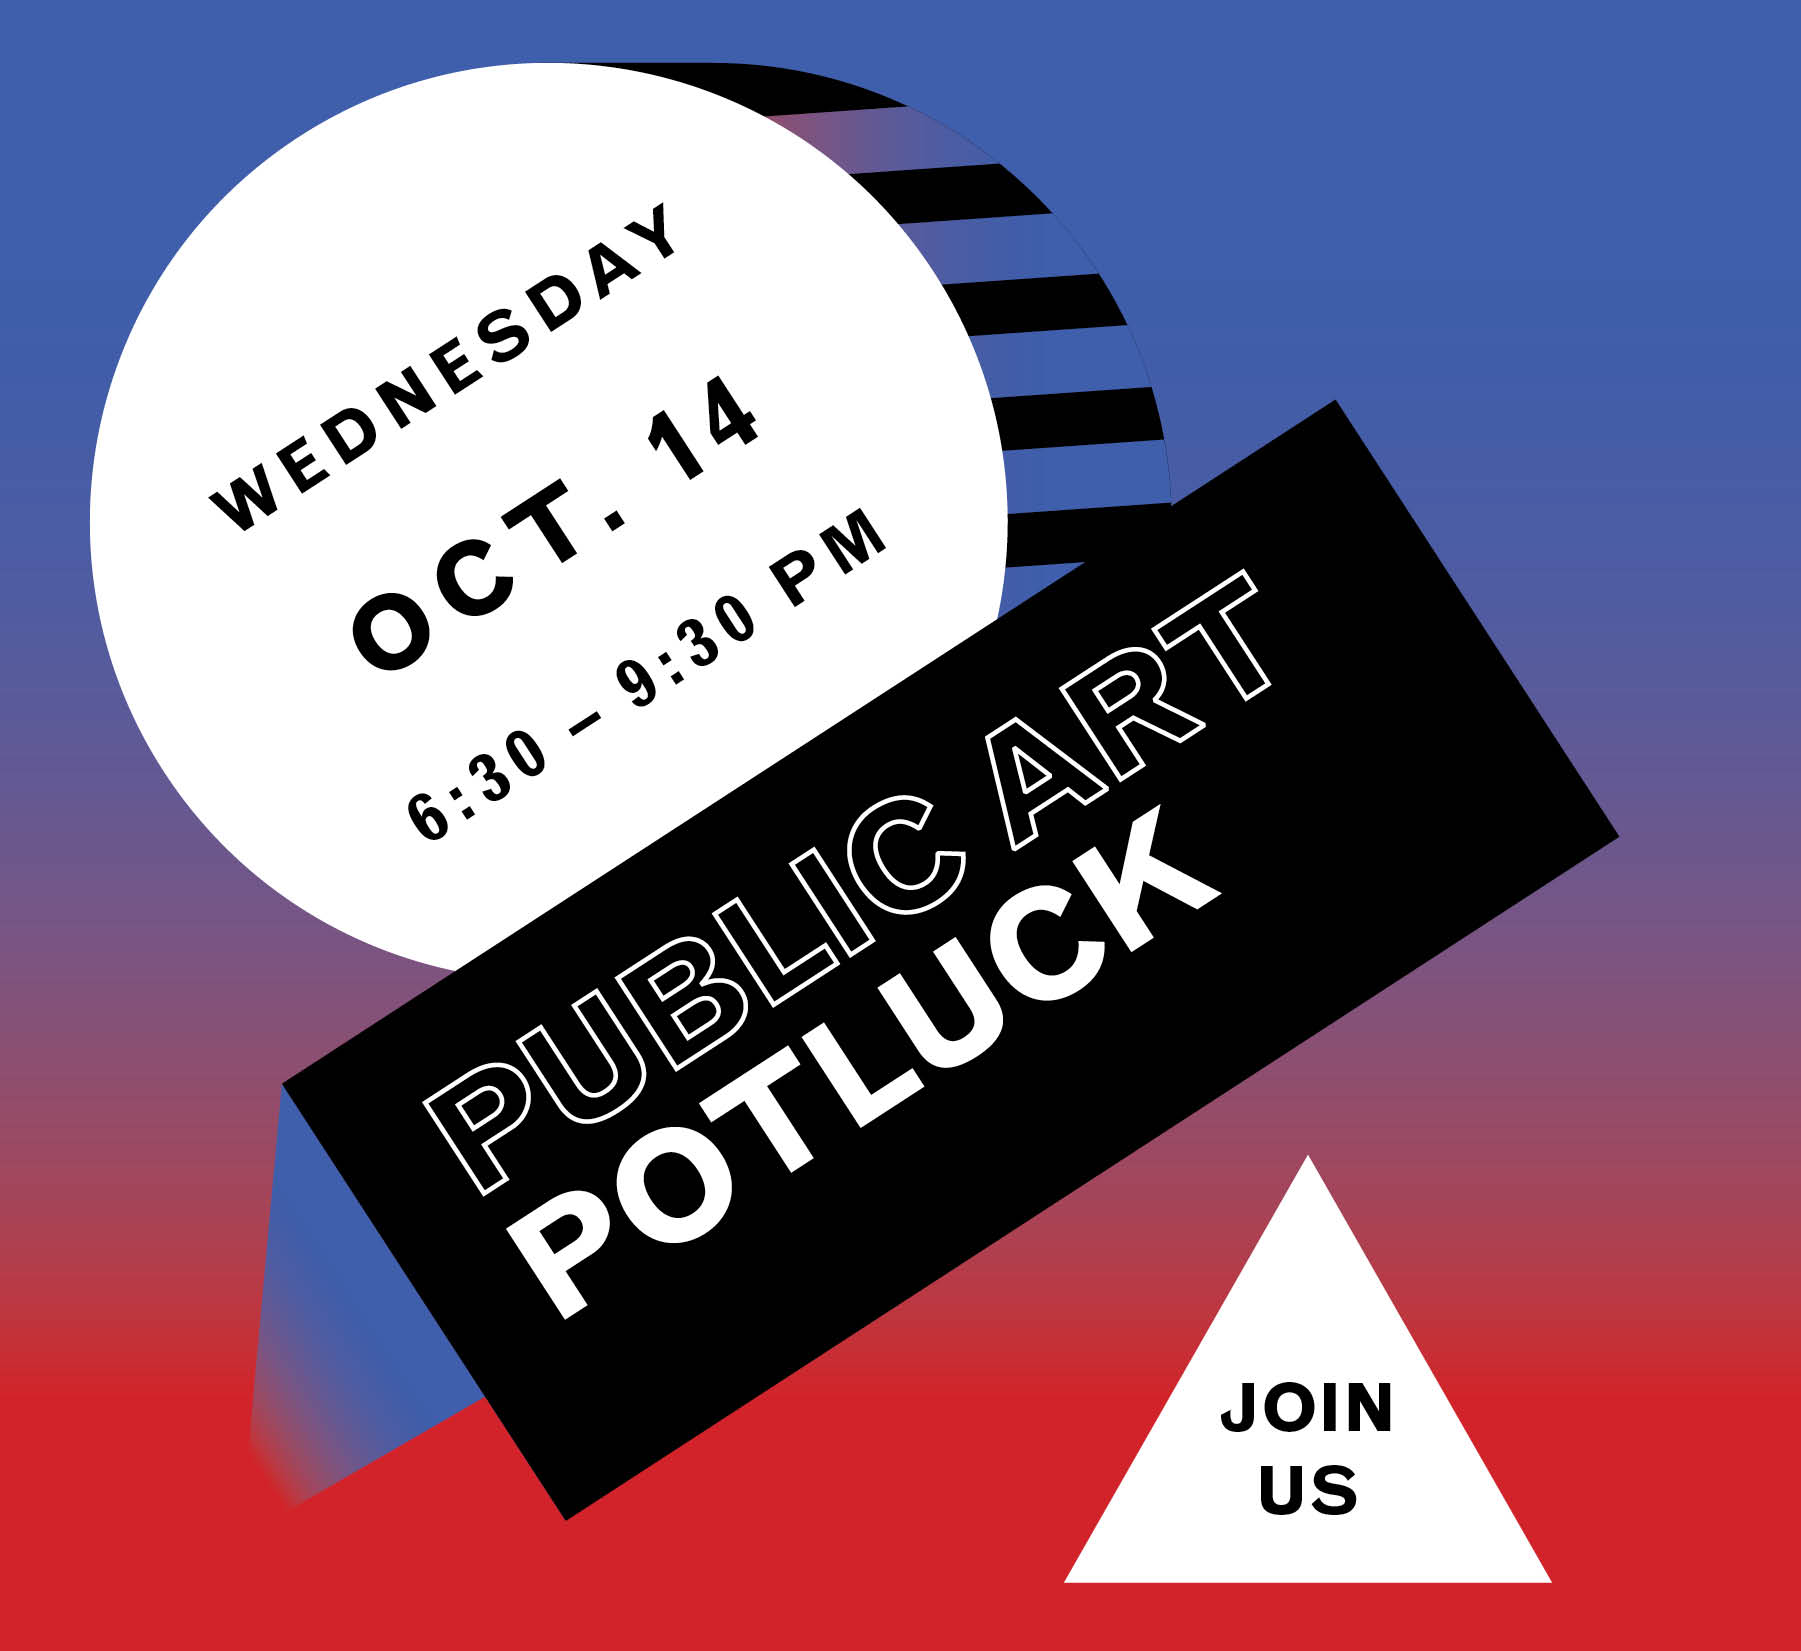 SAVE THE DATE Potluck